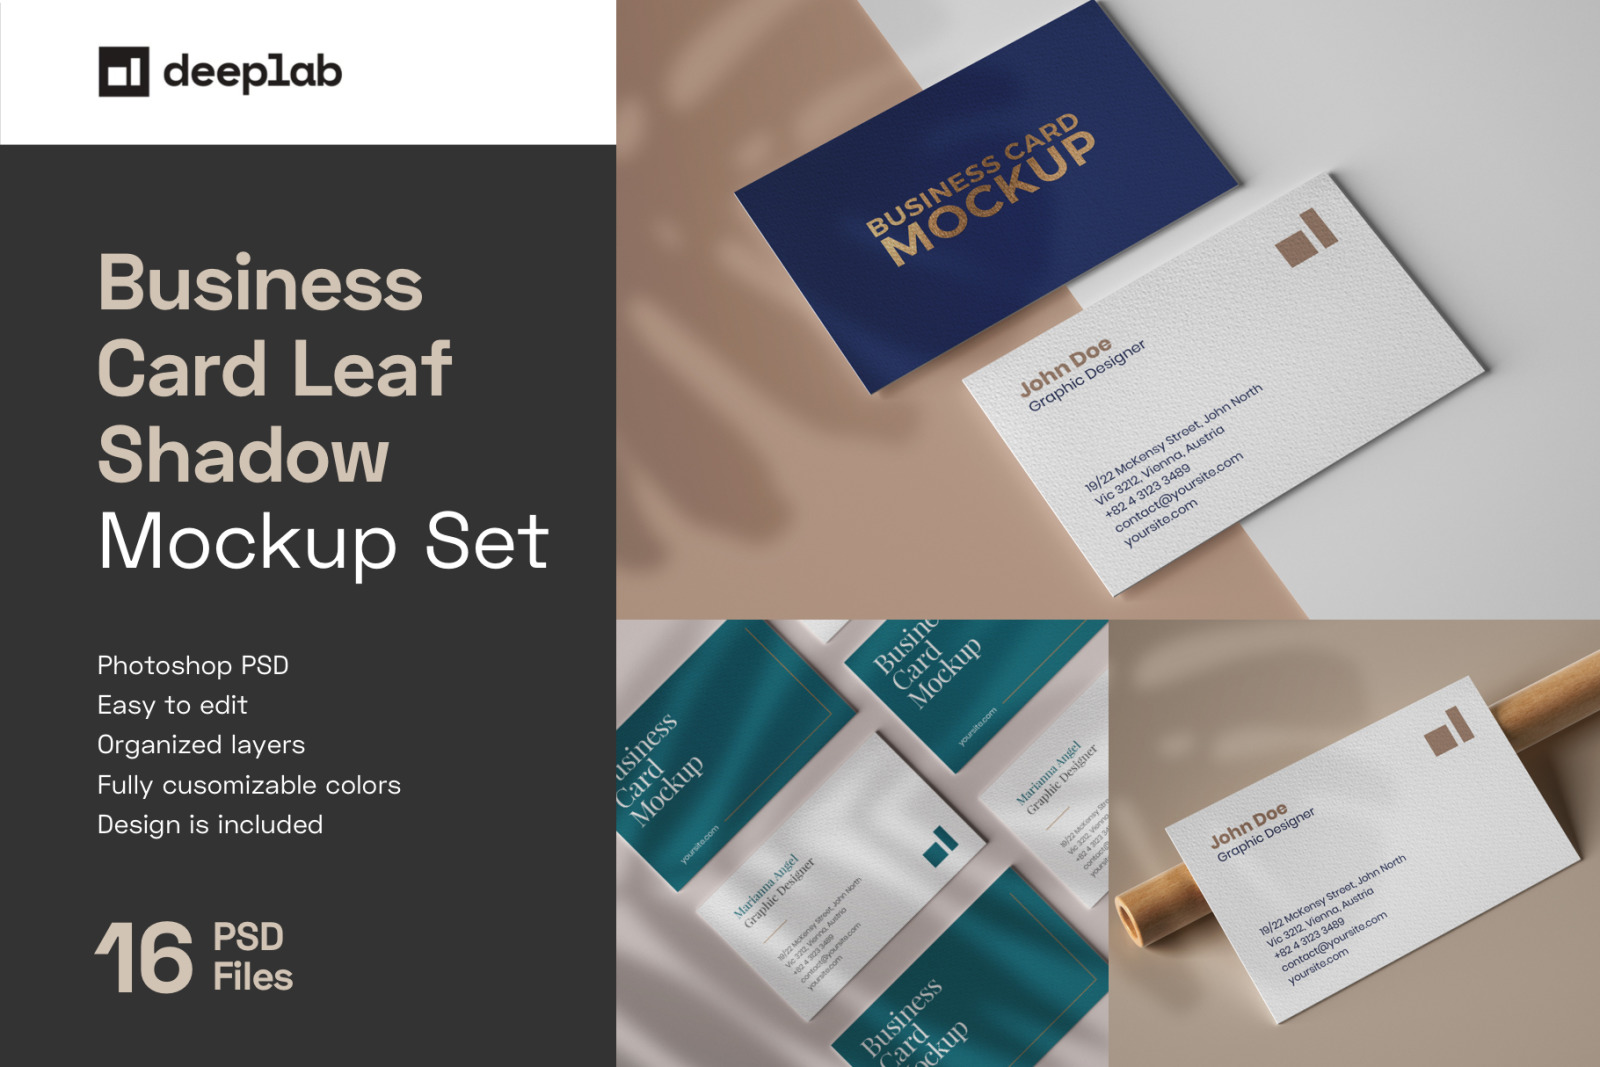 Business Card Mockup Set With Overlay Shadow In Stationery